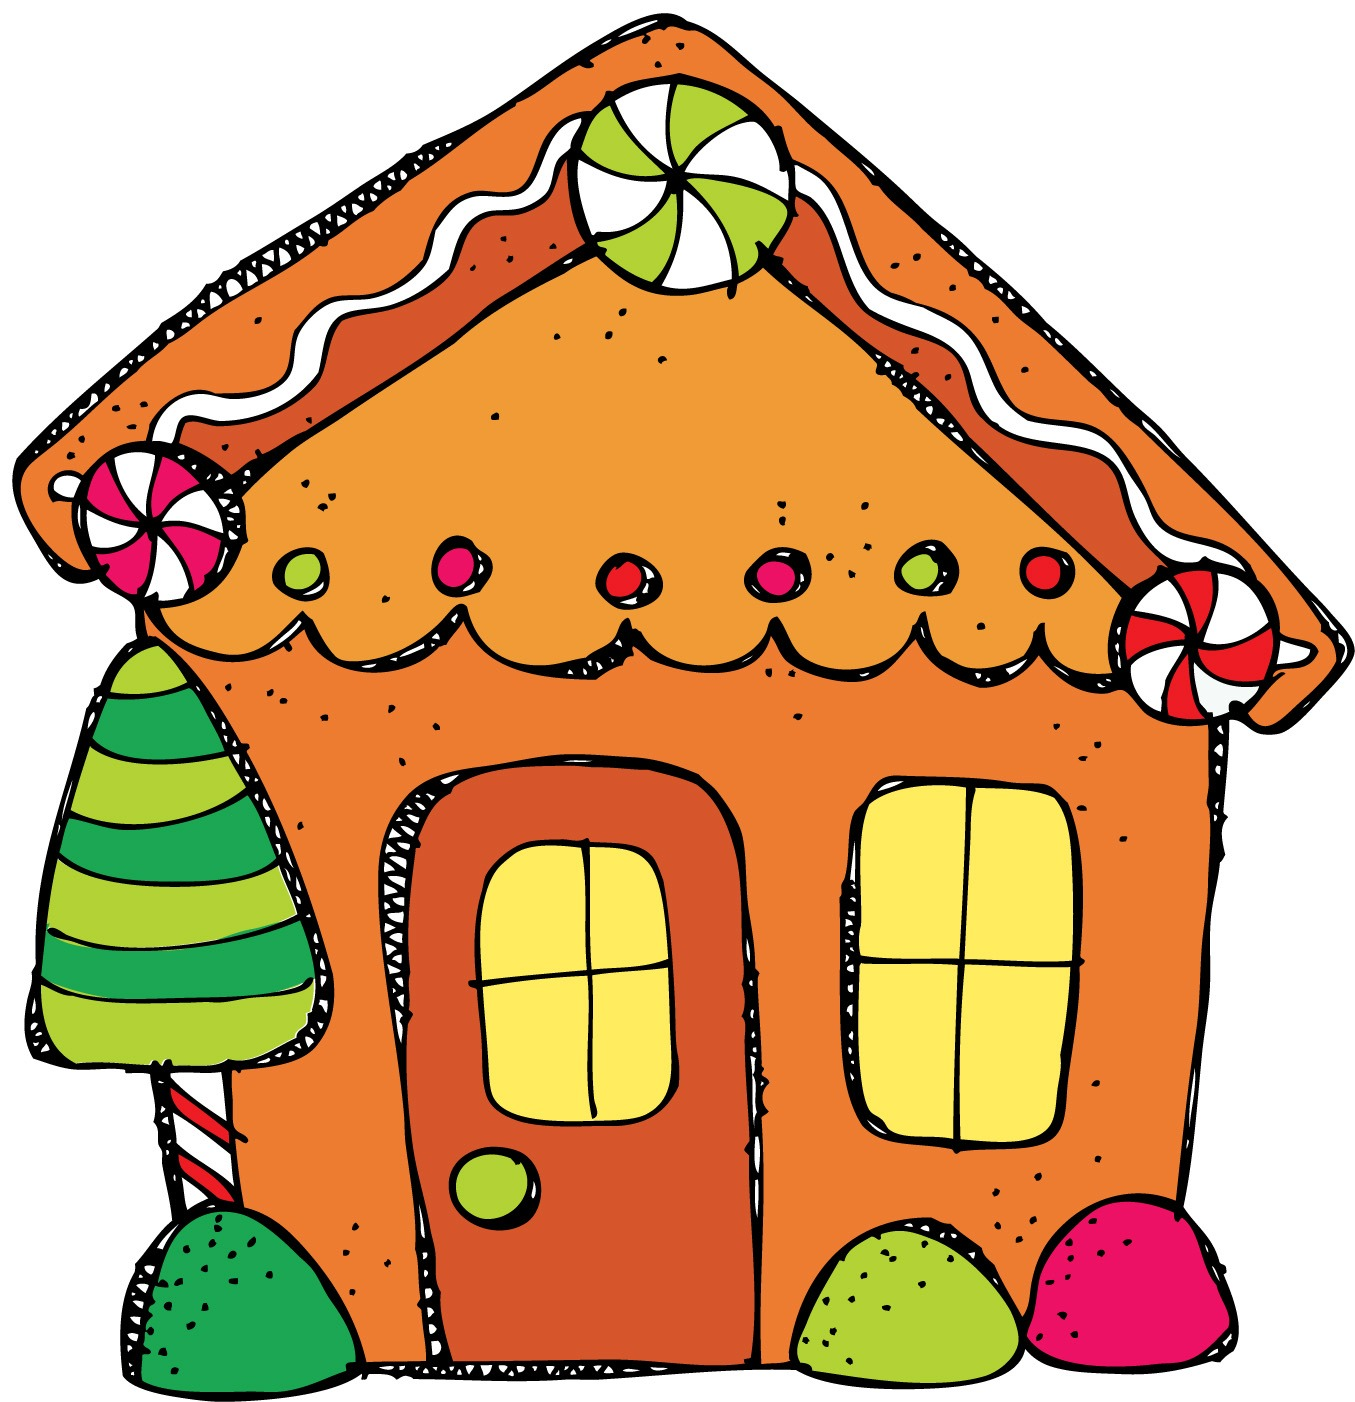 free gingerbread house clipart - photo #8